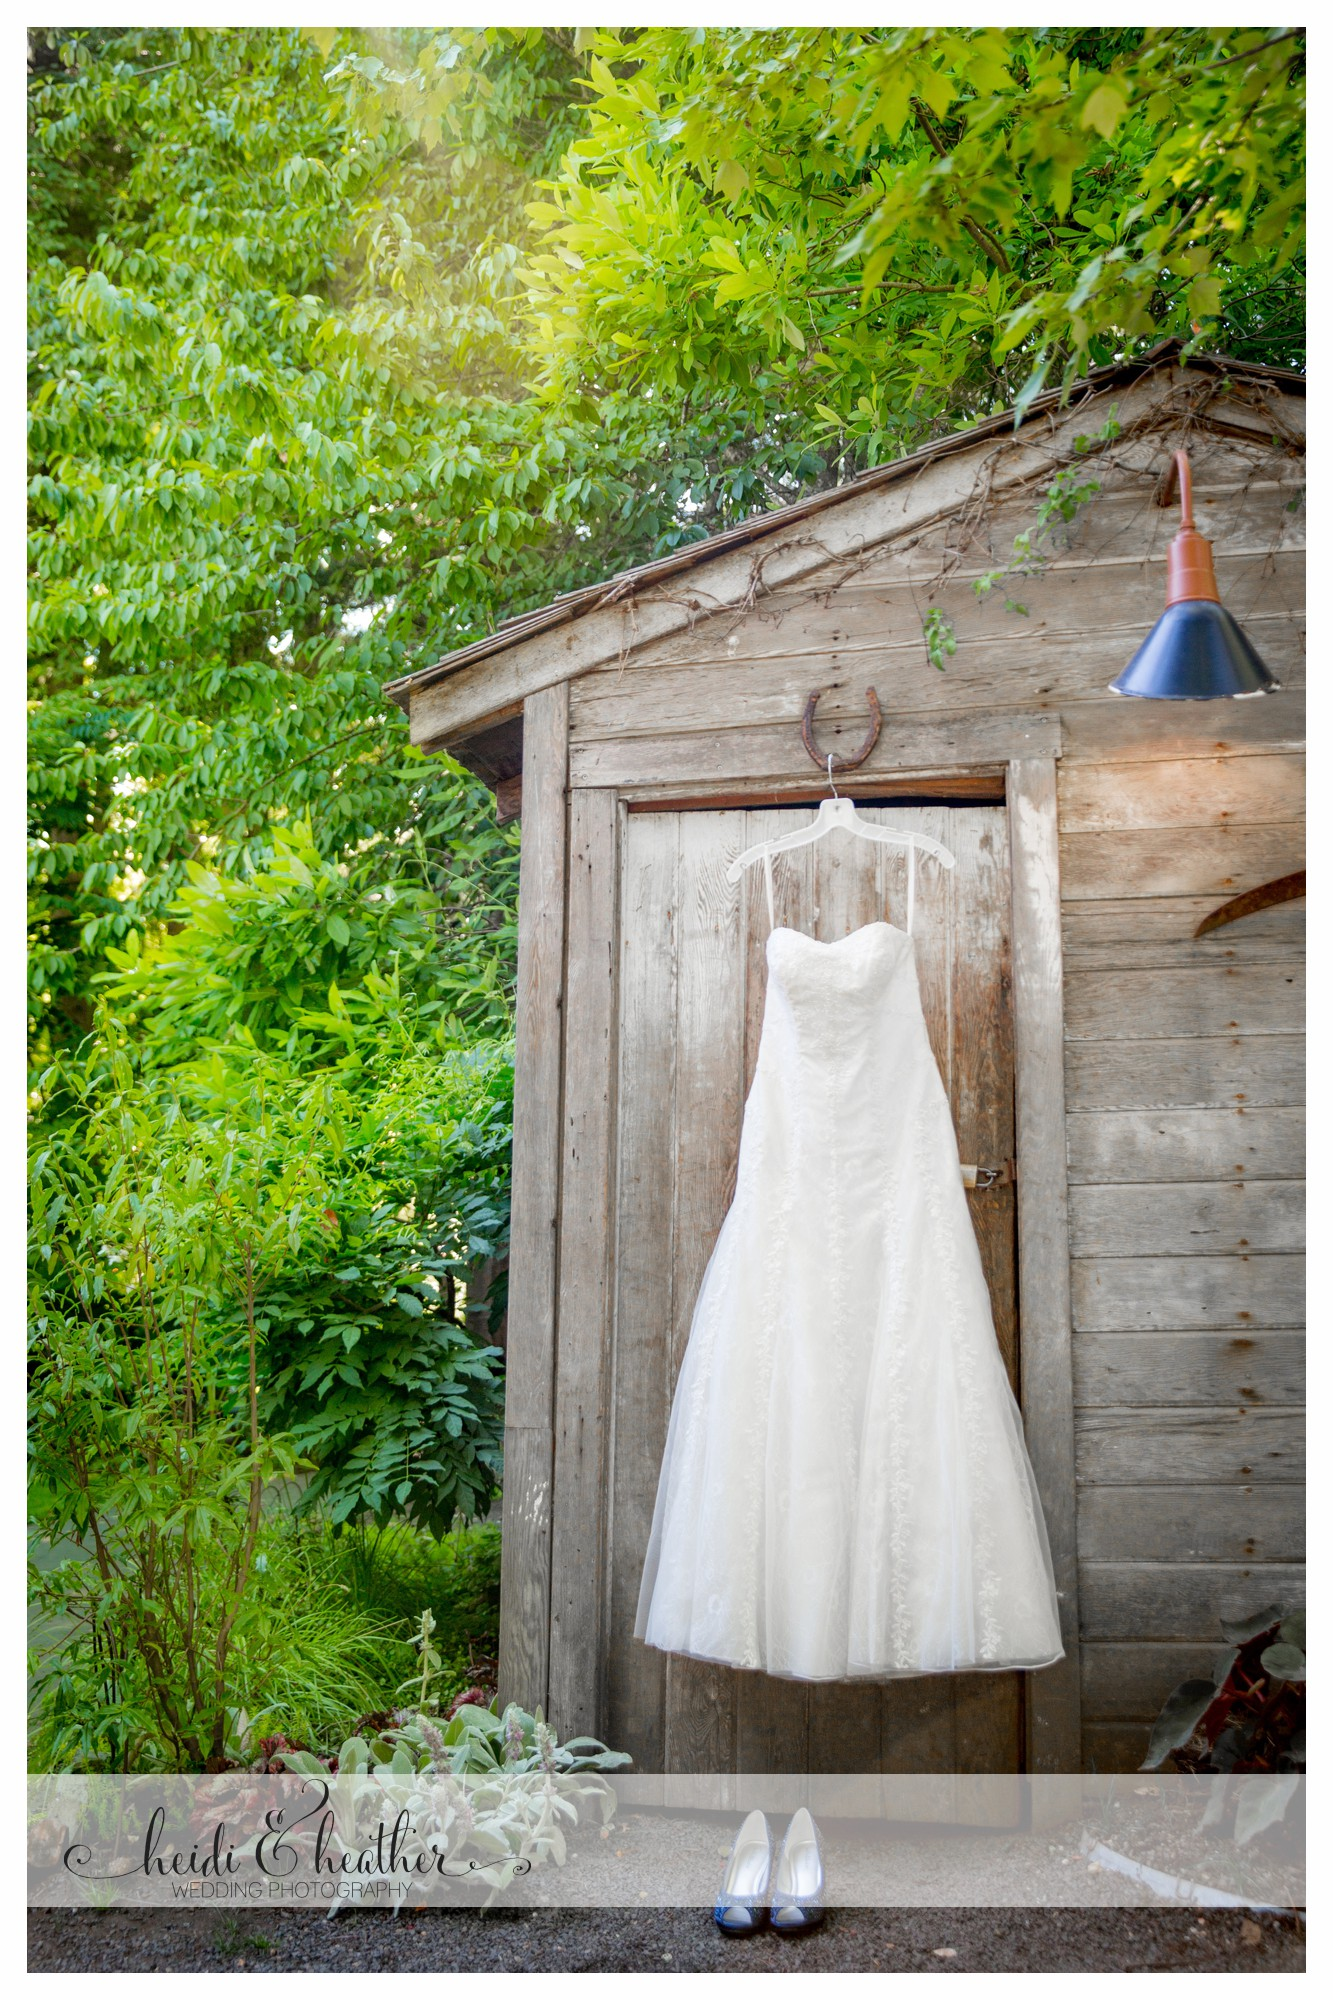 five on friday every girl dreams of her wedding dress wedding dress garment bag a sneak peek in the garment bag and reveal the beautiful dress the bride has chosen for herself Enjoy a few photos of some of our favorite dresses